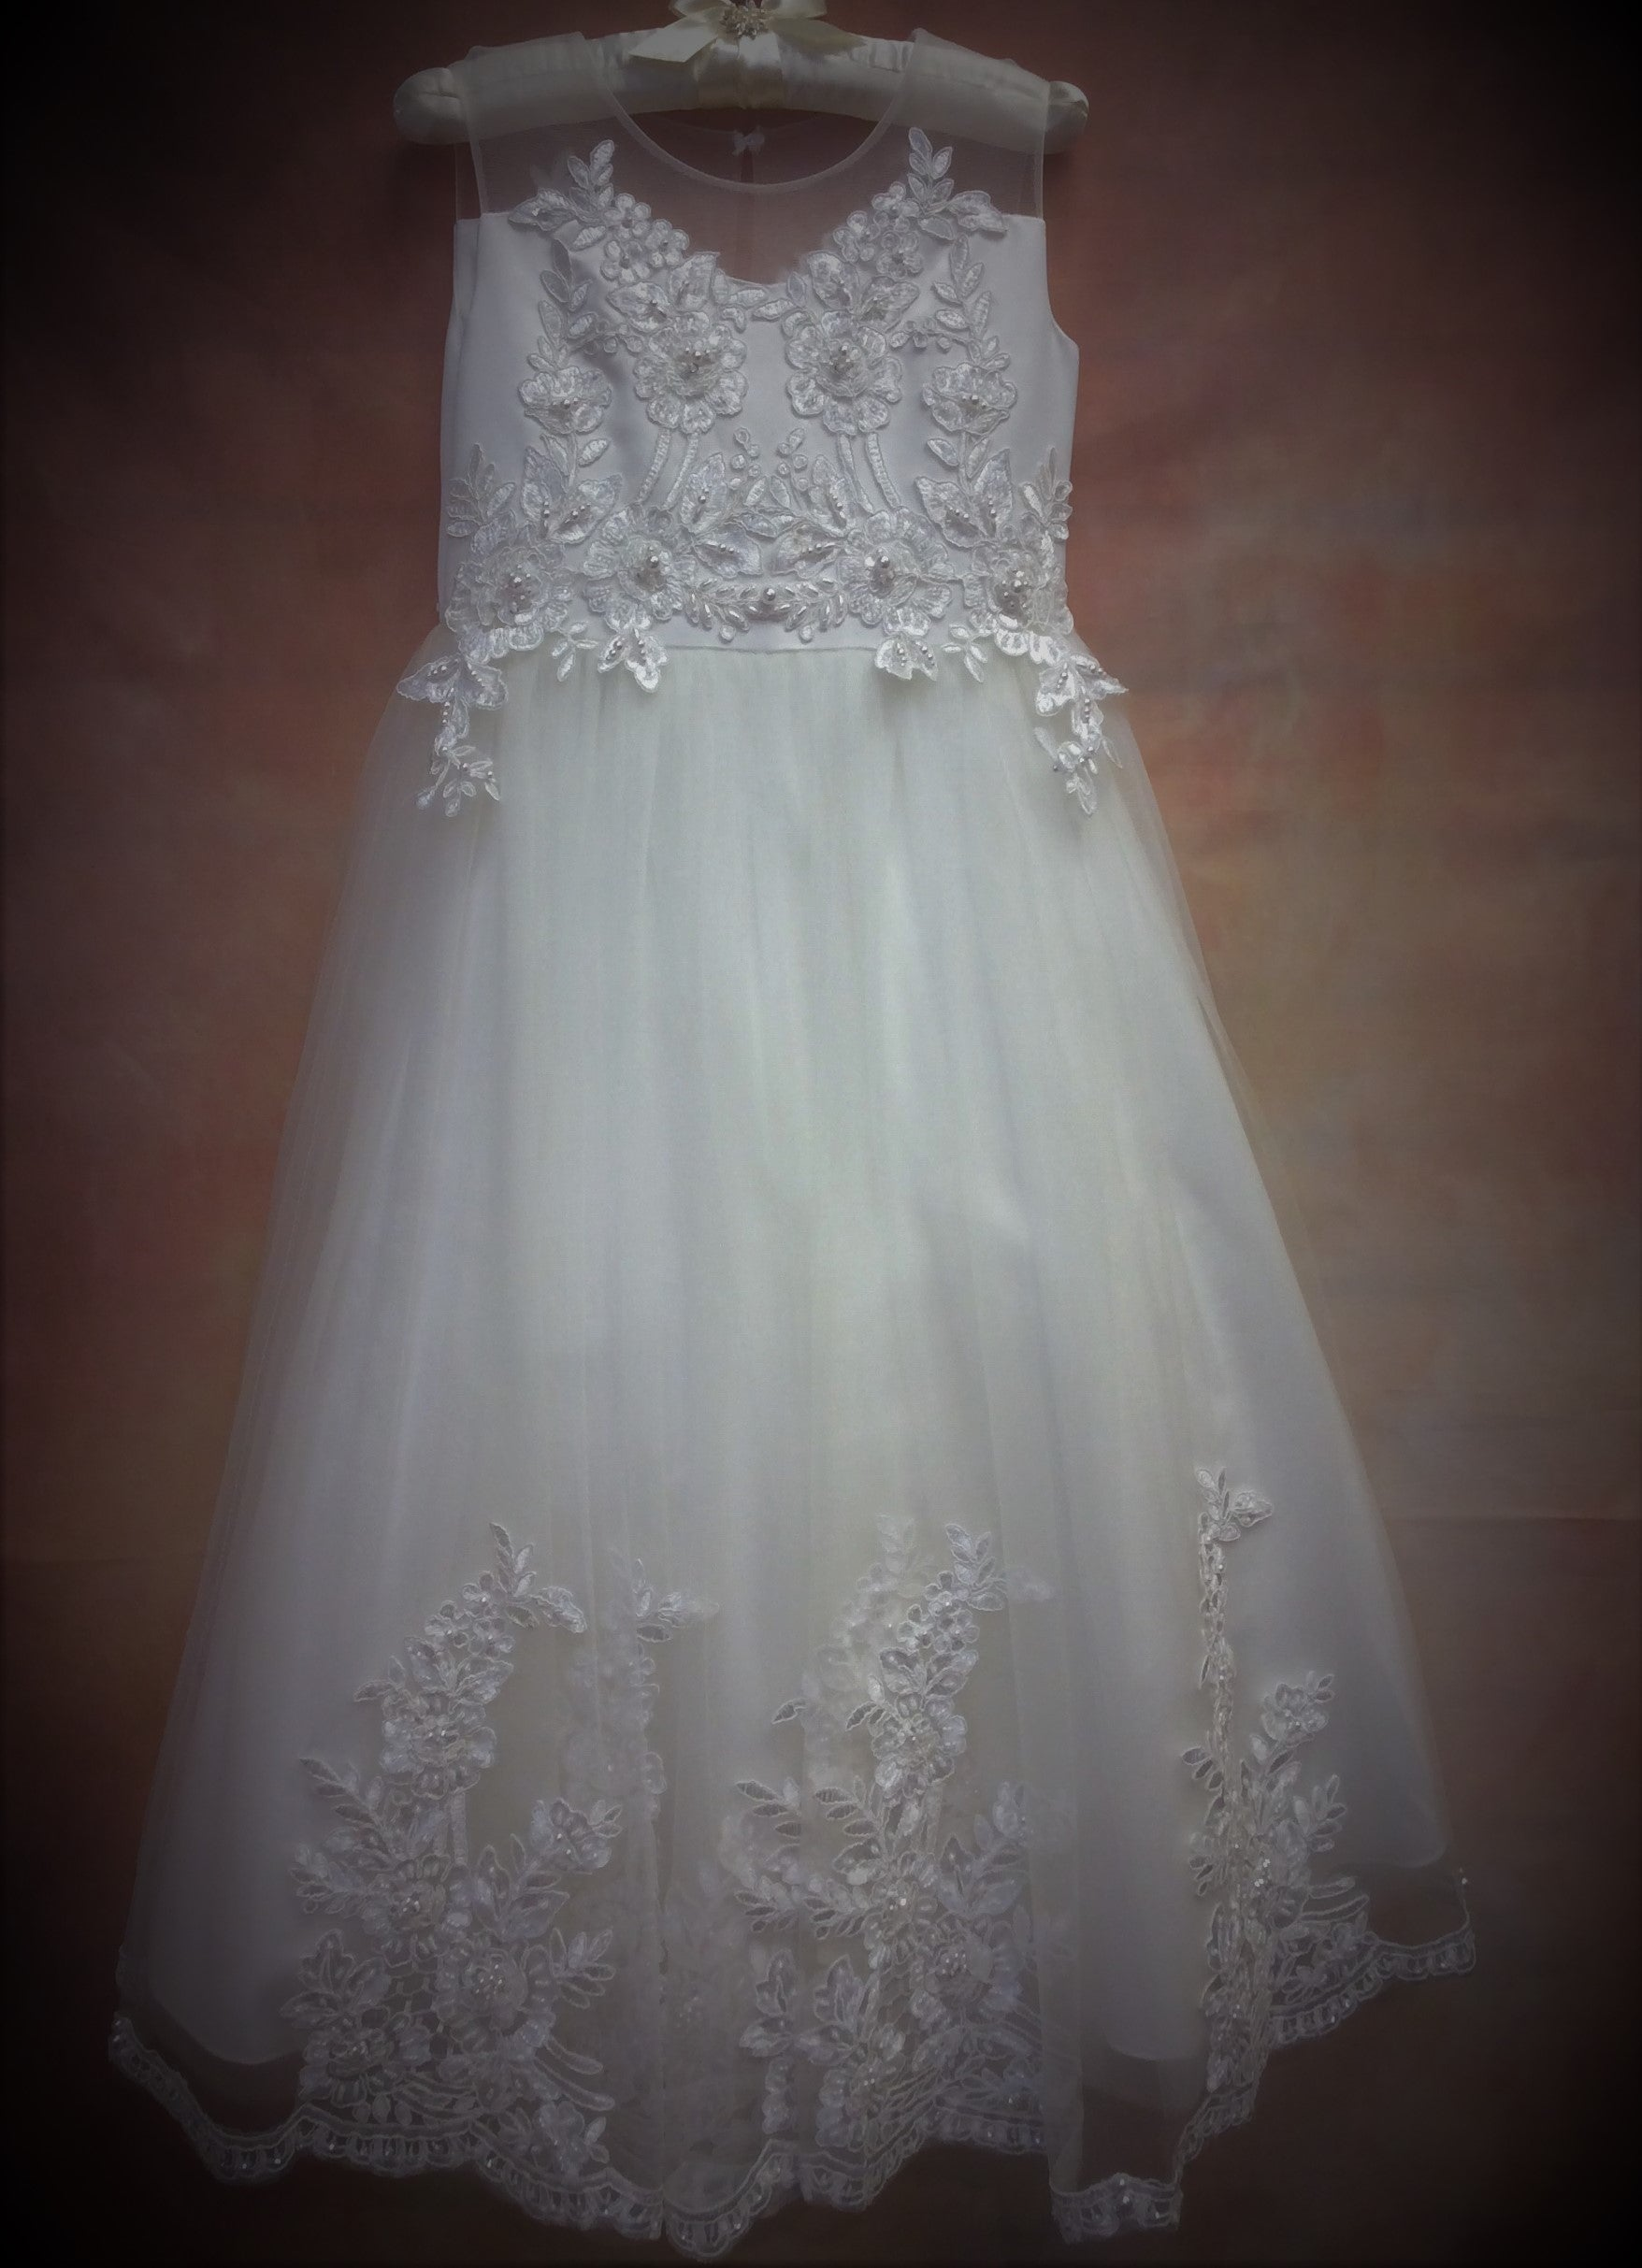 T592 Designer Communion Dress - Nenes Lullaby Boutique Inc